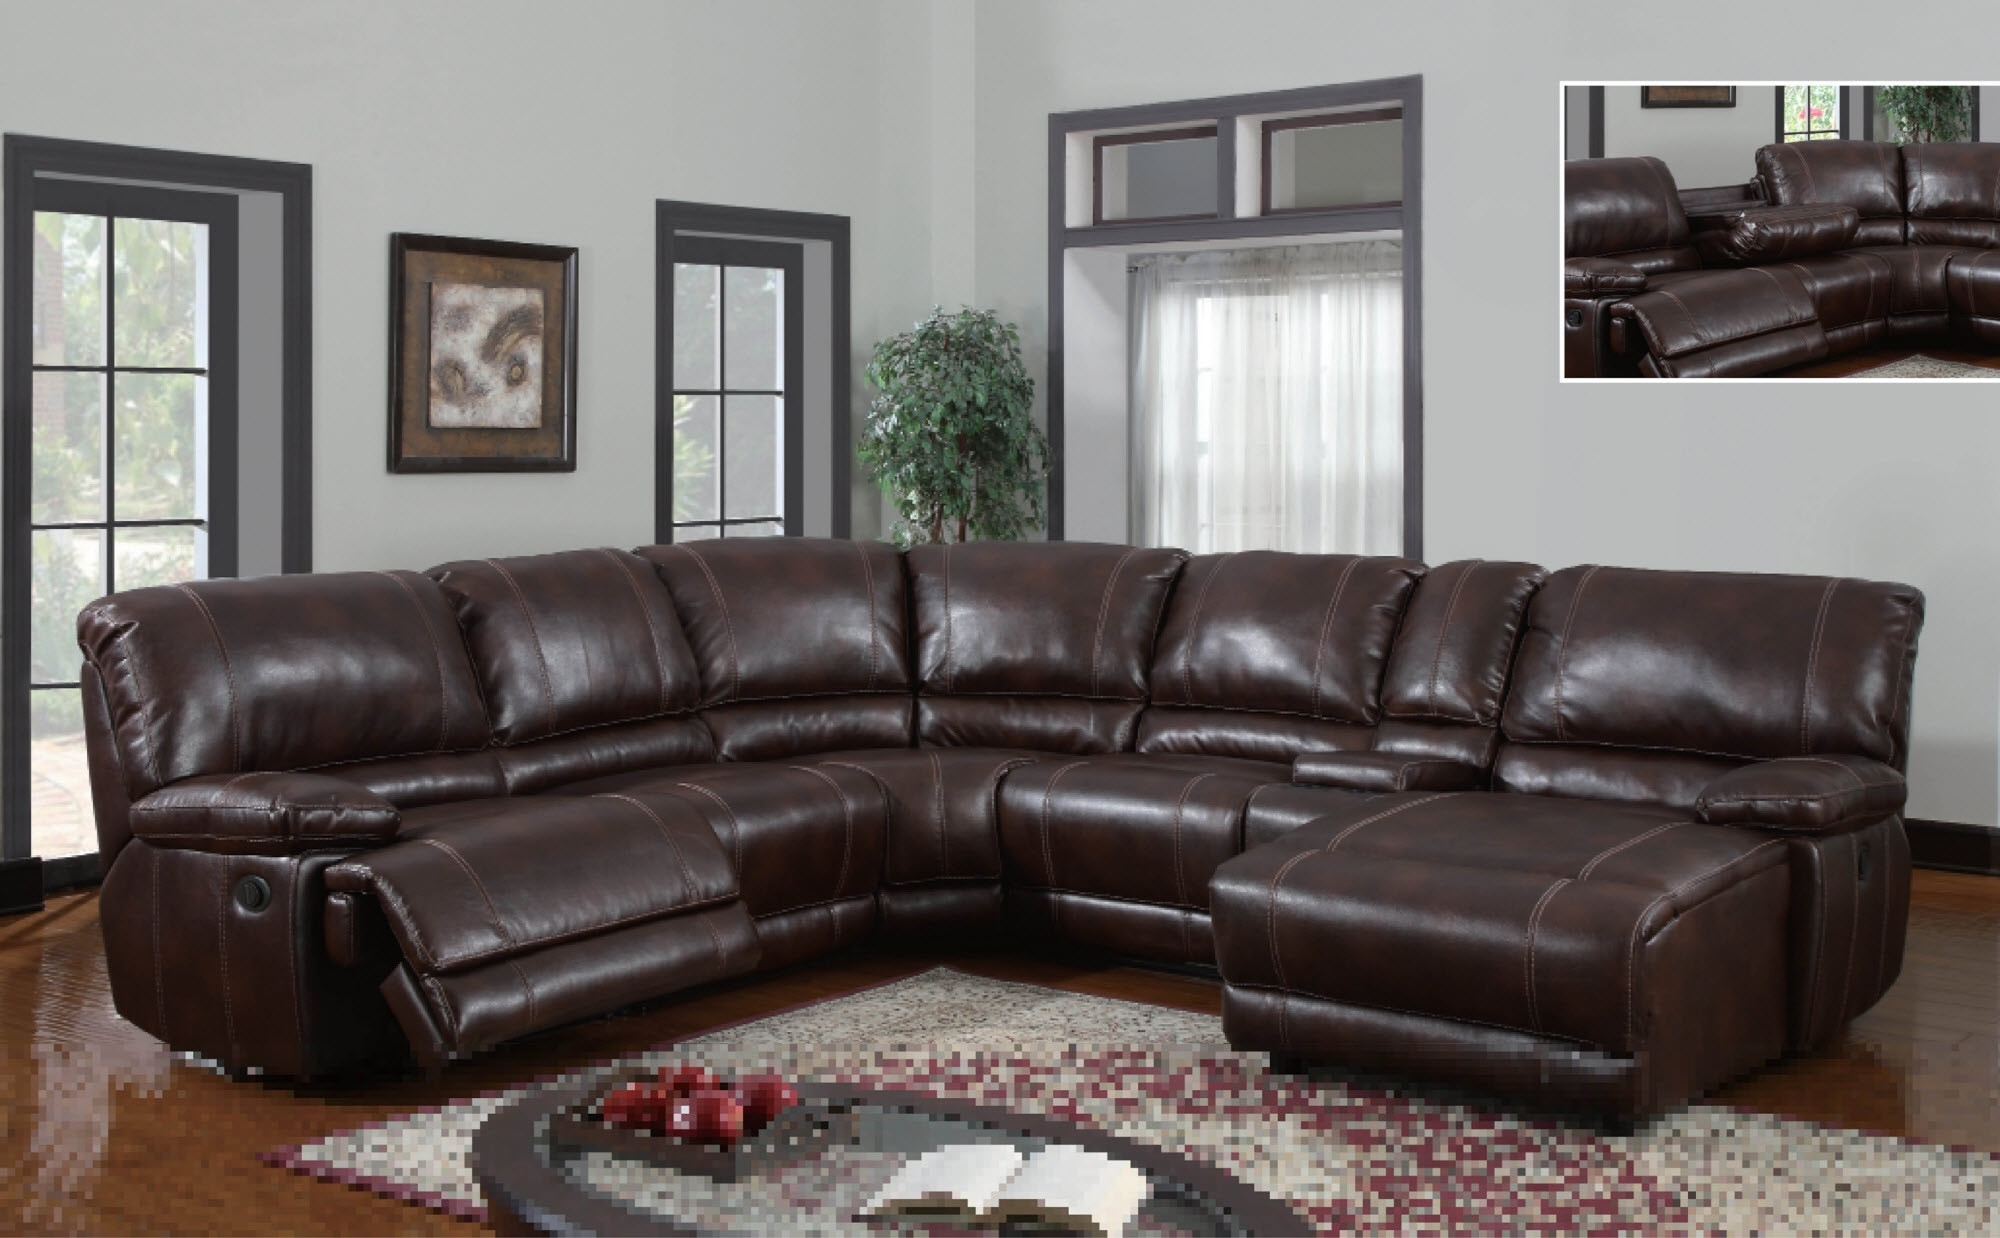 Conns Furniture El Paso Tx Luxury Living Room Cheap Sectional Sofas within El Paso Texas Sectional Sofas (Image 3 of 10)